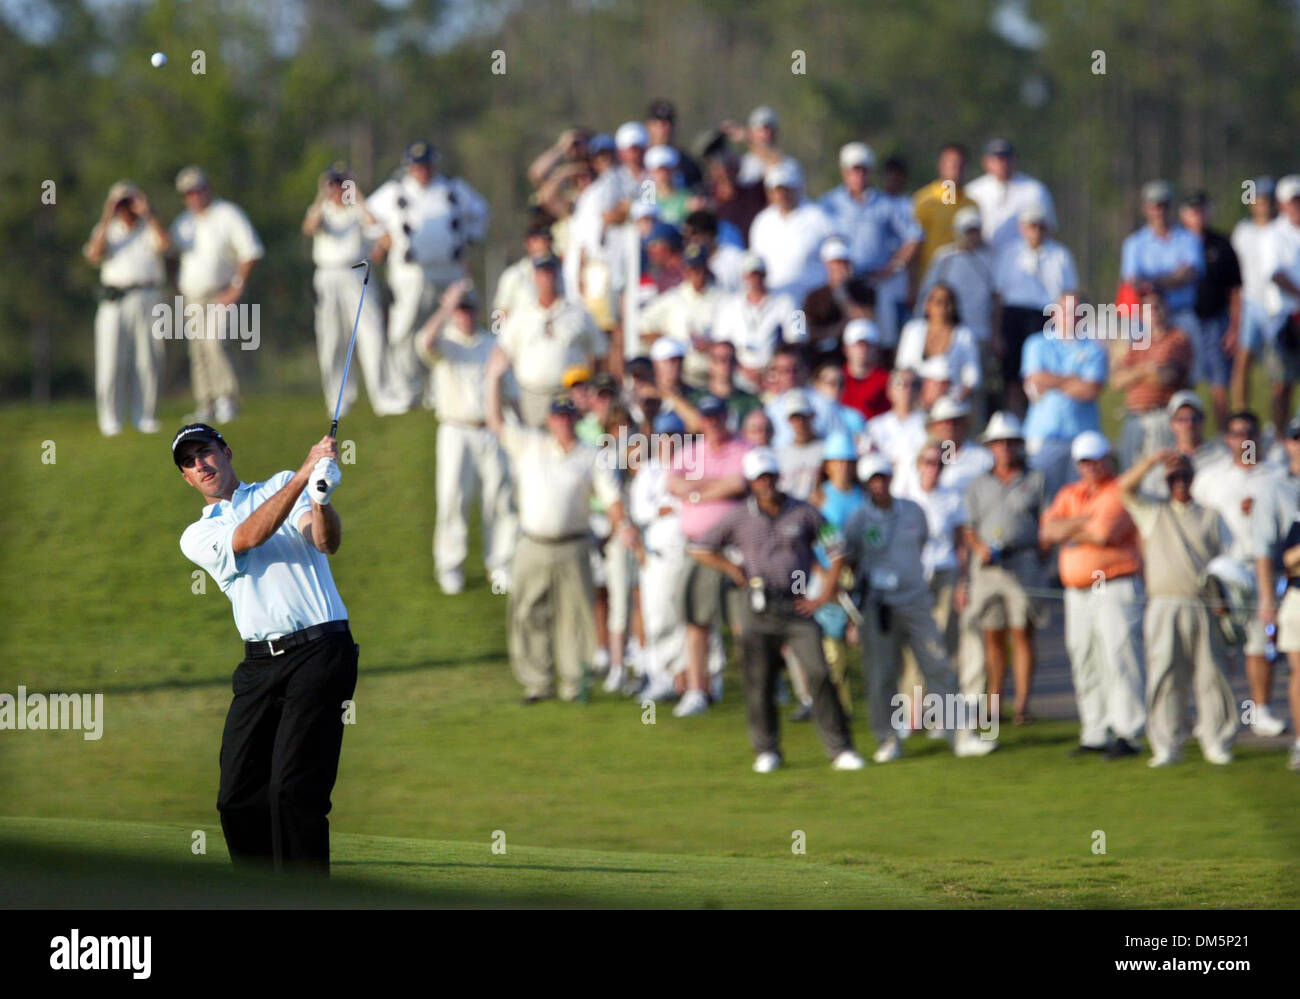 Mar 12, 2005; Palm Beach Gardens, FL, USA; The crowd watches GEOFF OGILVY on the 18th fairway at The Honda Classic Stock Photo